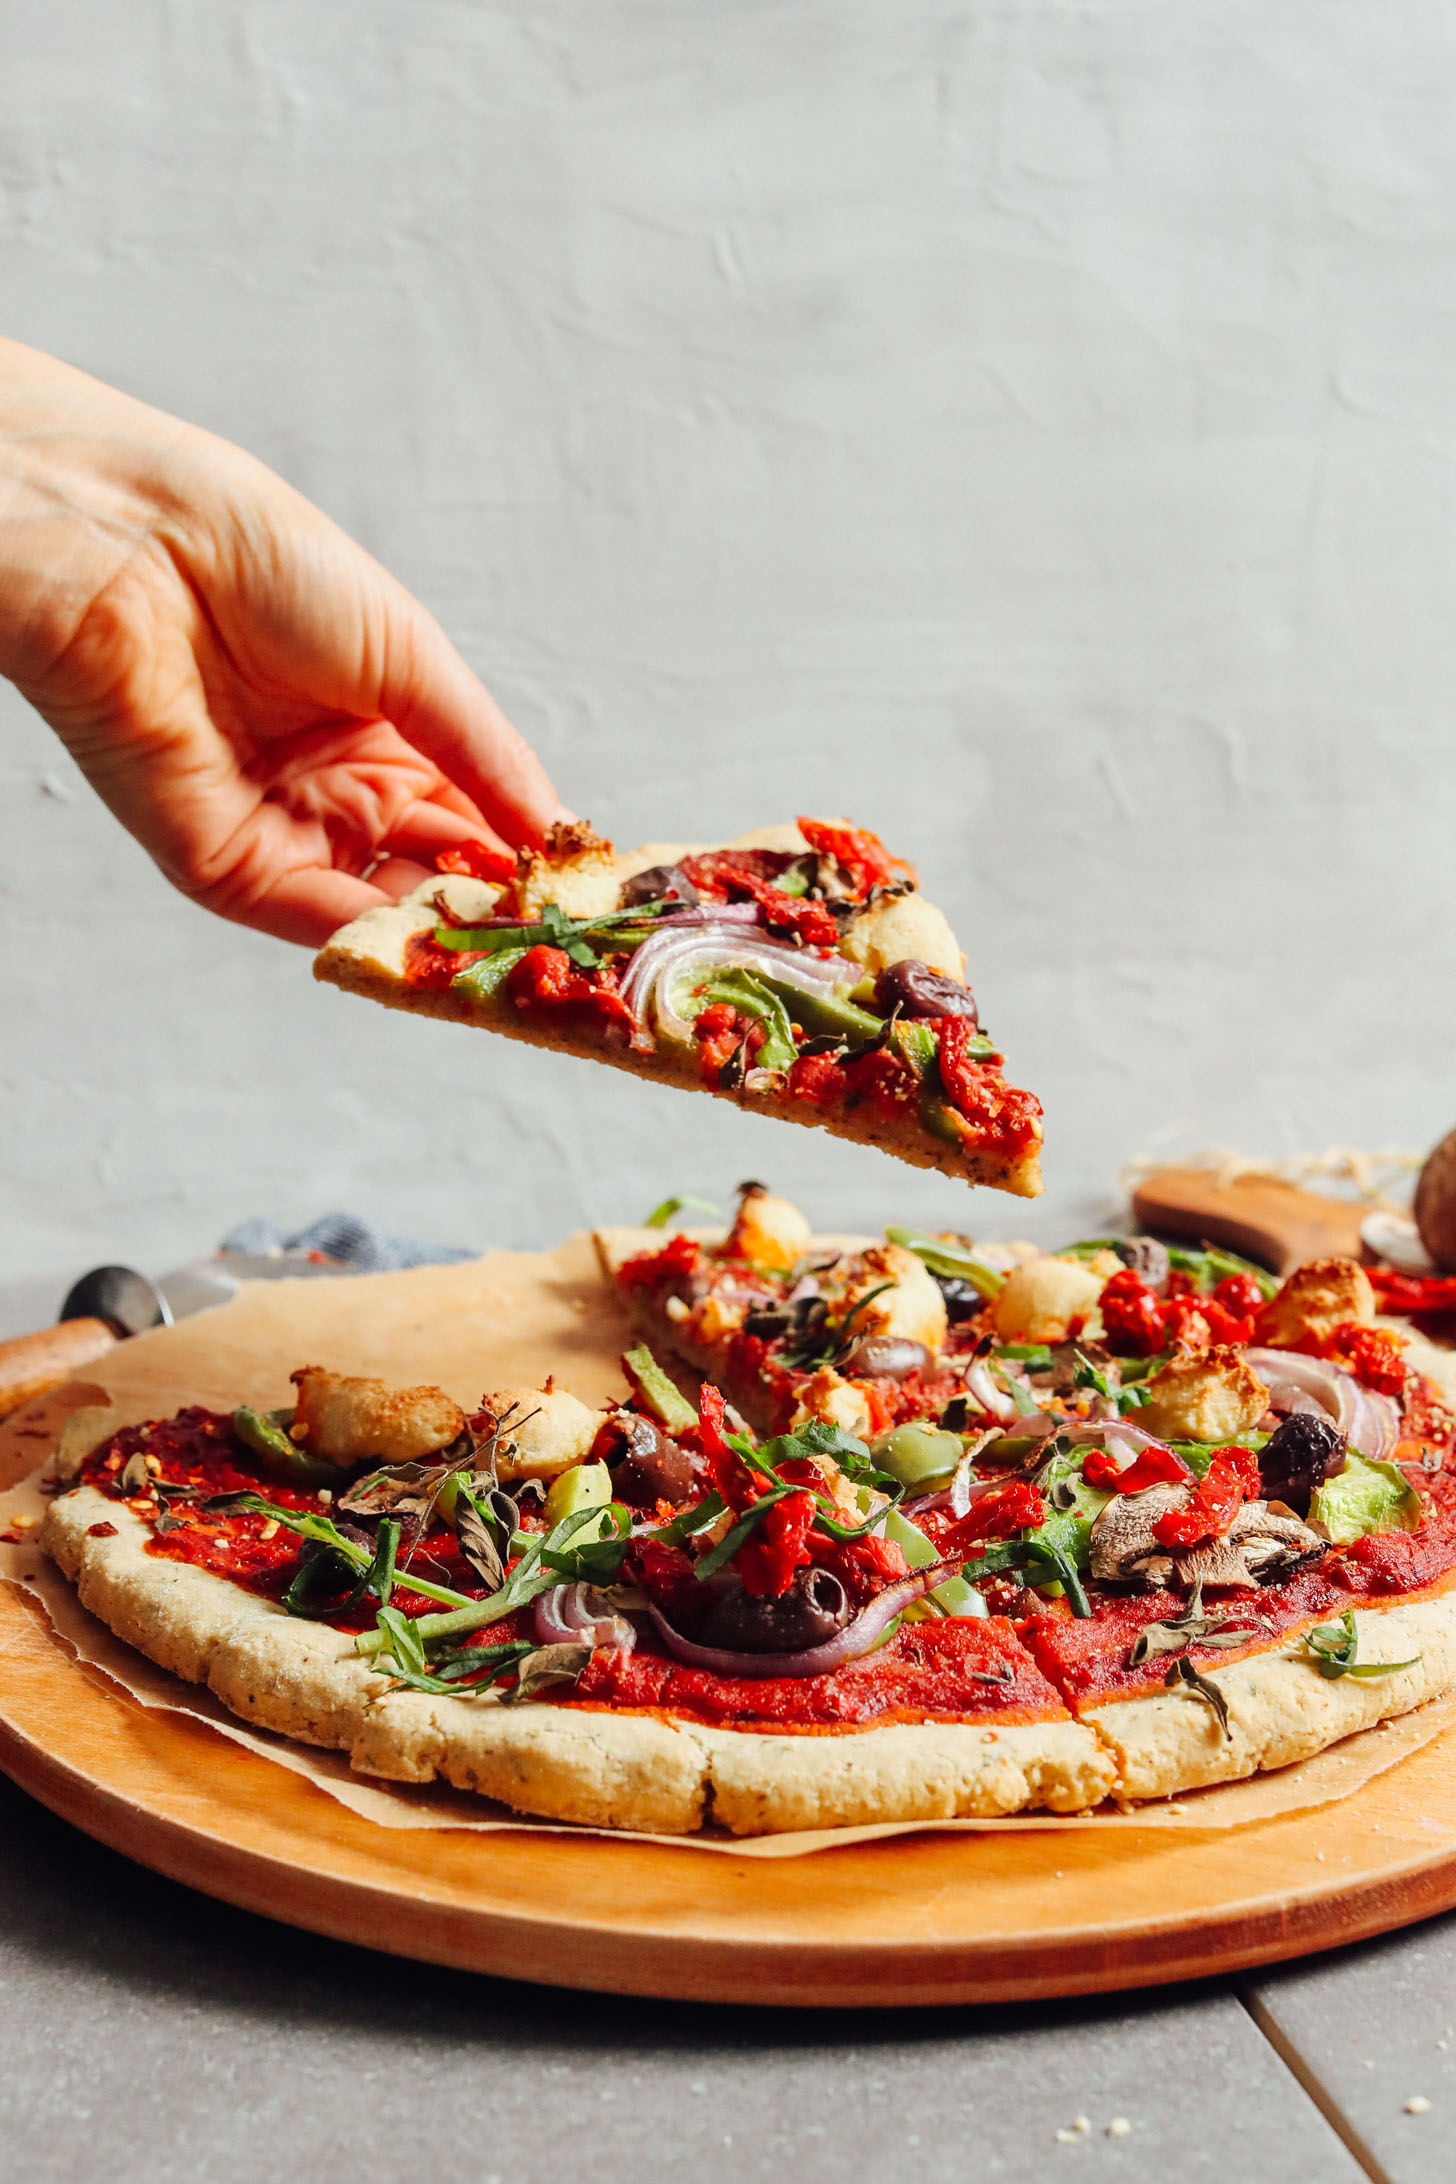 Grabbing a slice of pizza created using our Gluten-Free Pizza Crust recipe